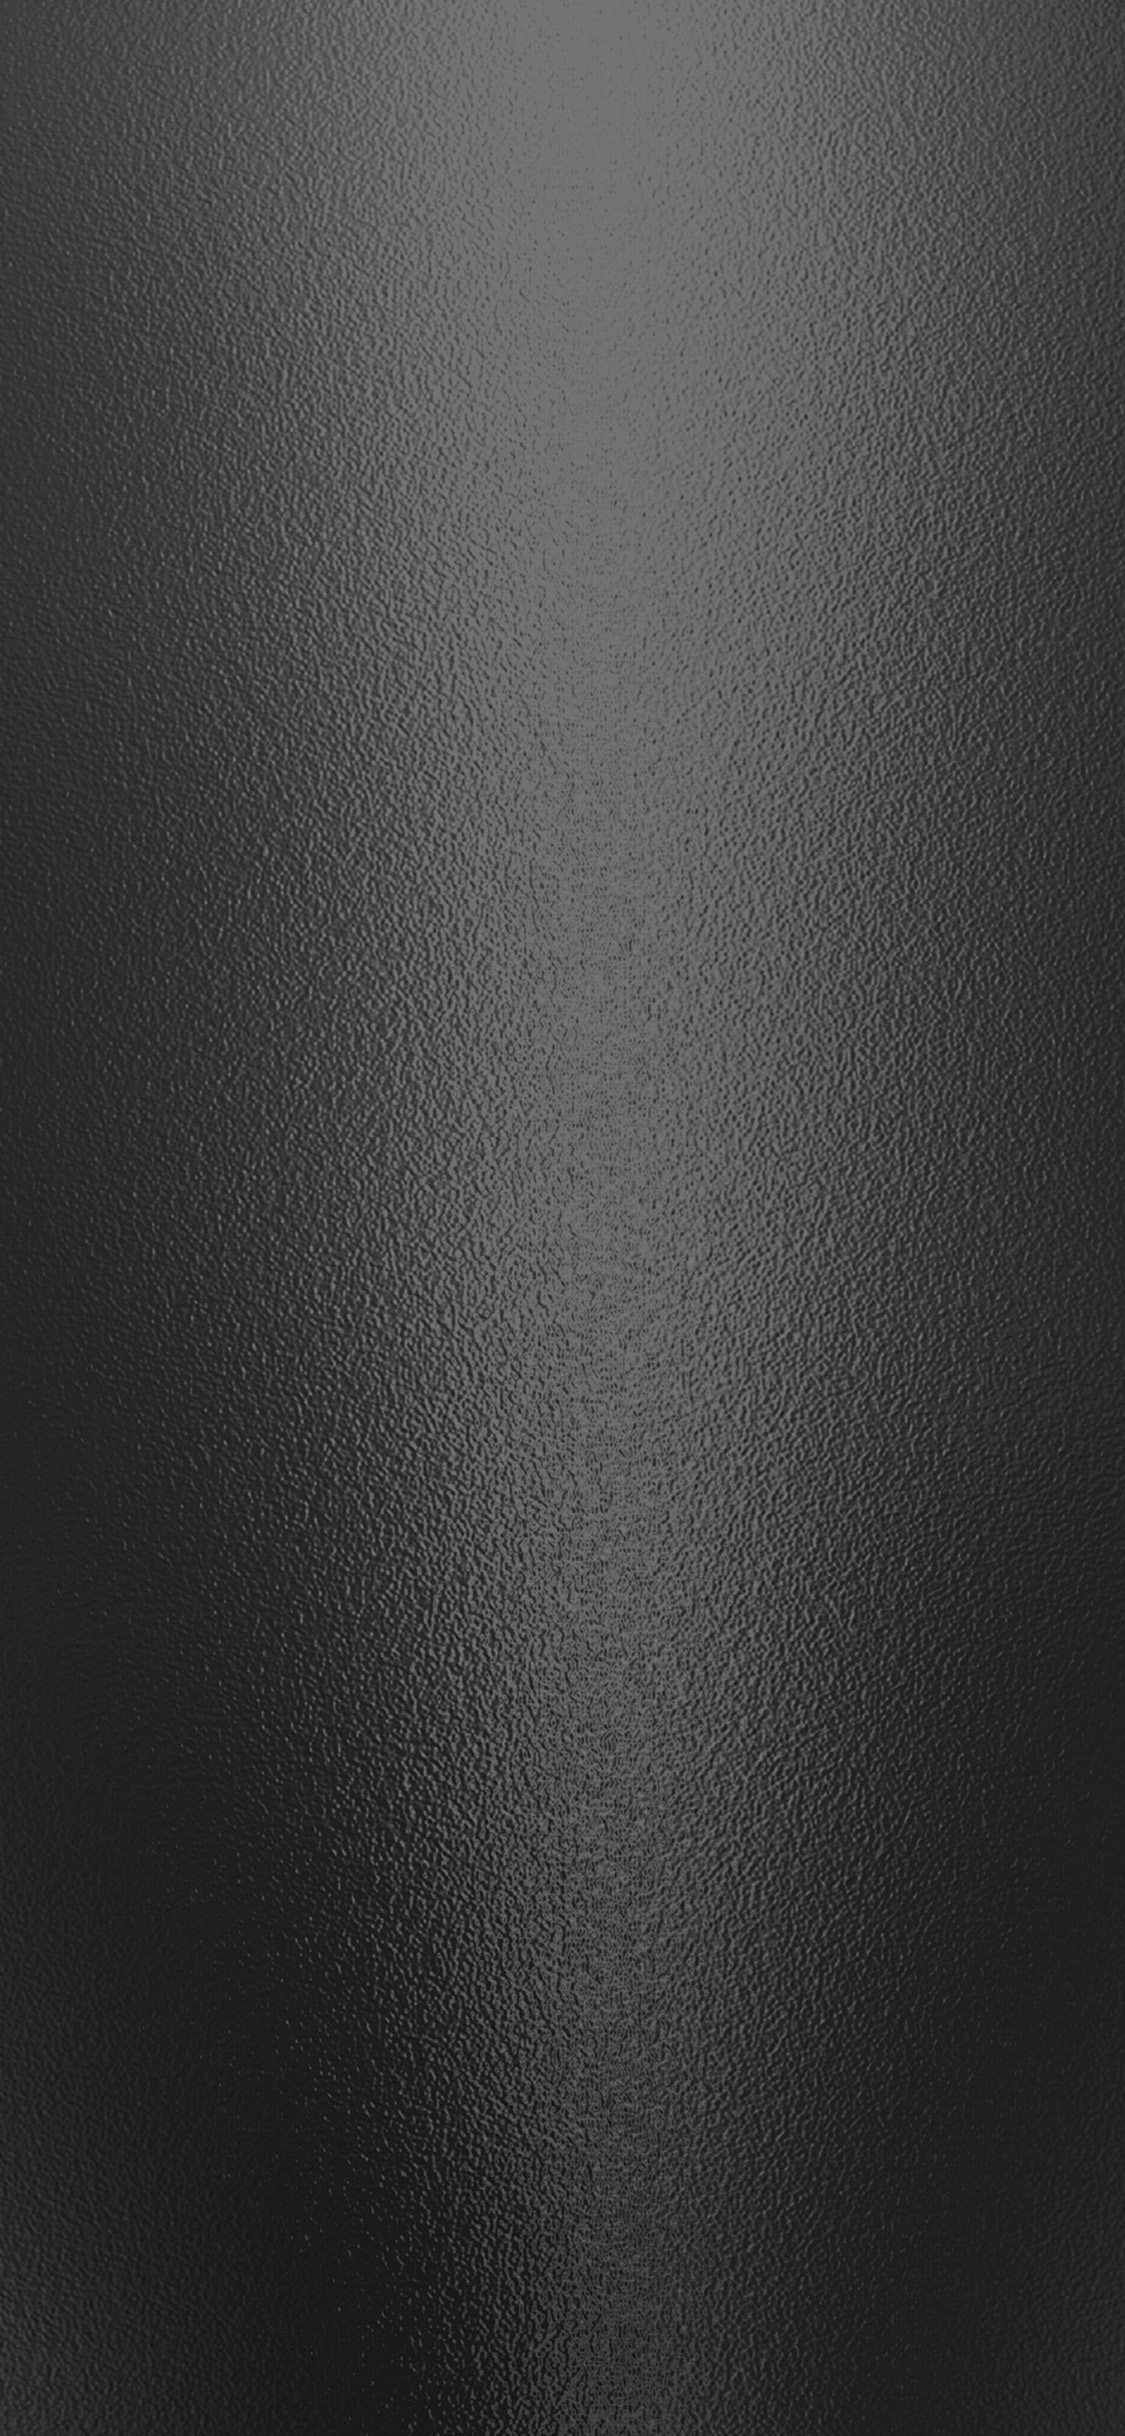 iPhonexpapers.com-Apple-iPhone-wallpaper-wb14-texture-metal-dark-pattern-background